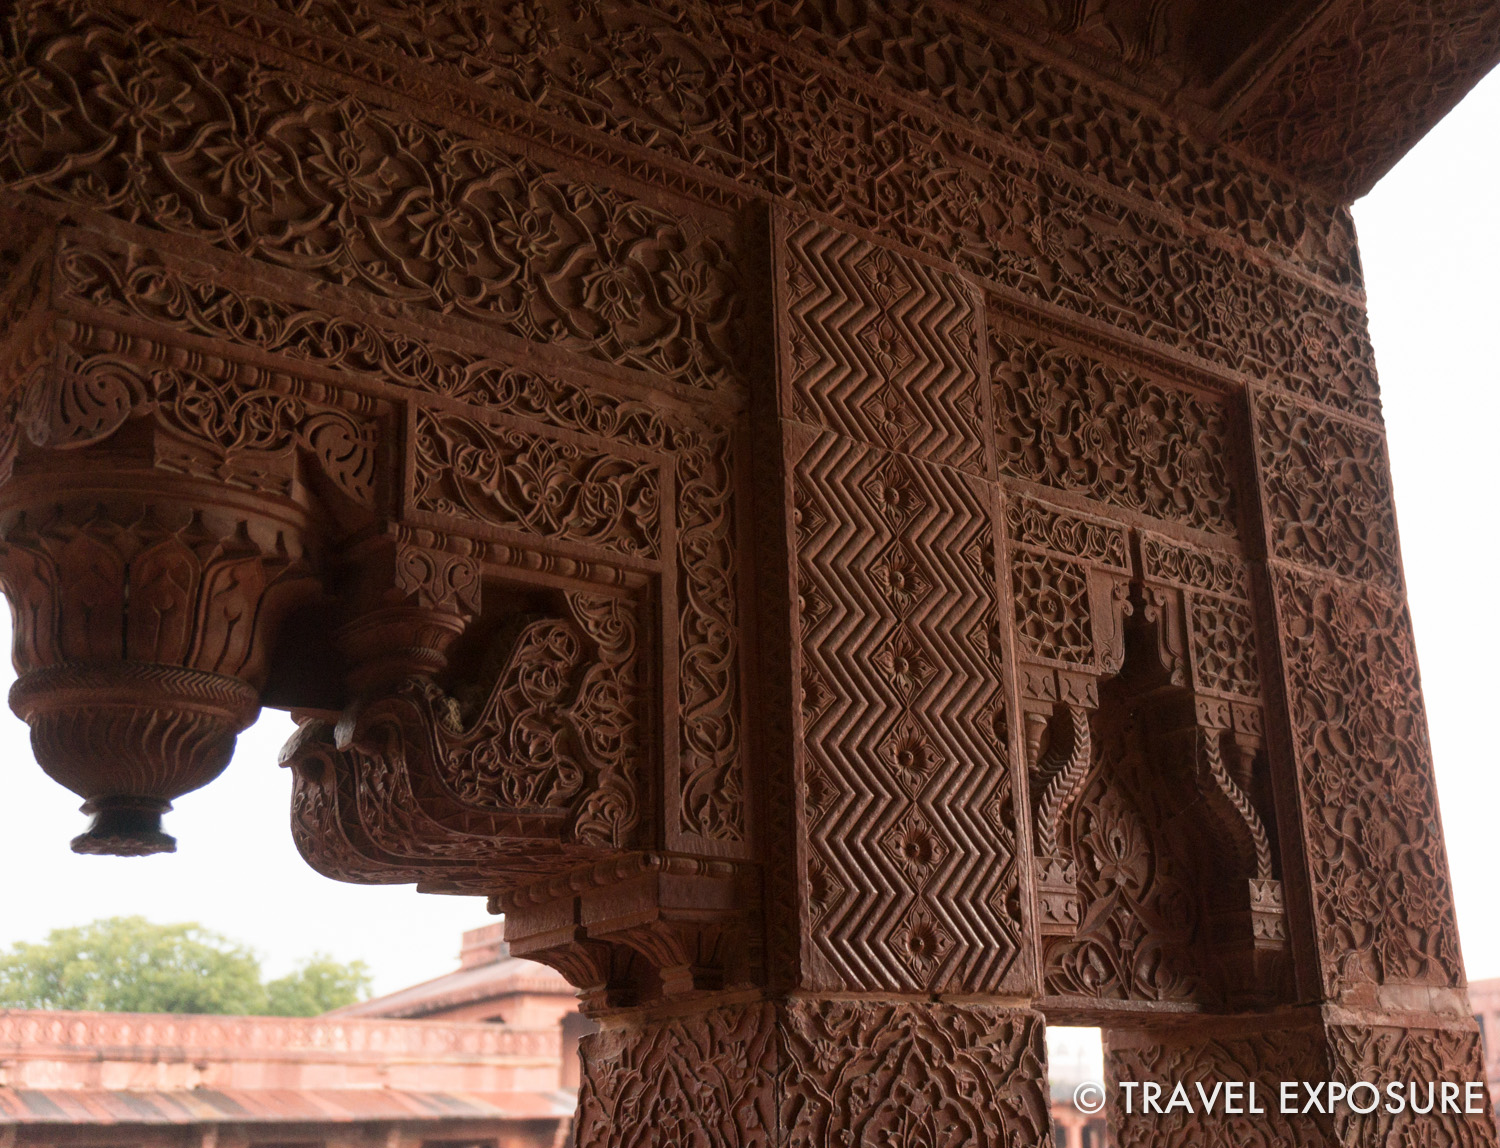 At Fatehpur Sikri city: The geometric patterns reflect Islamic style; thelotus and floral patterns reflect the Hindu style.